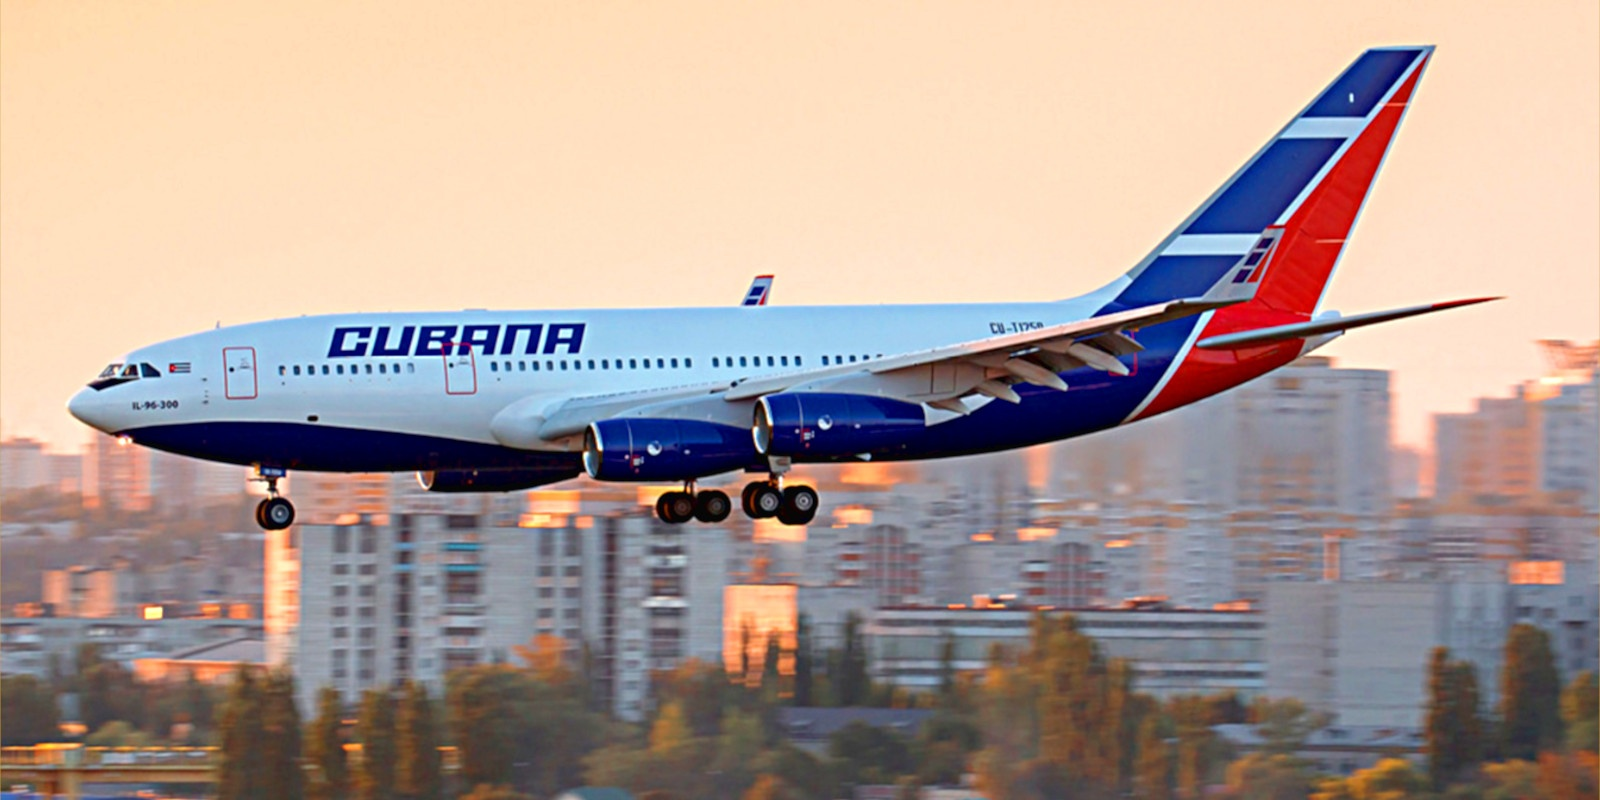 A Cubana airliner coming in for a landing.